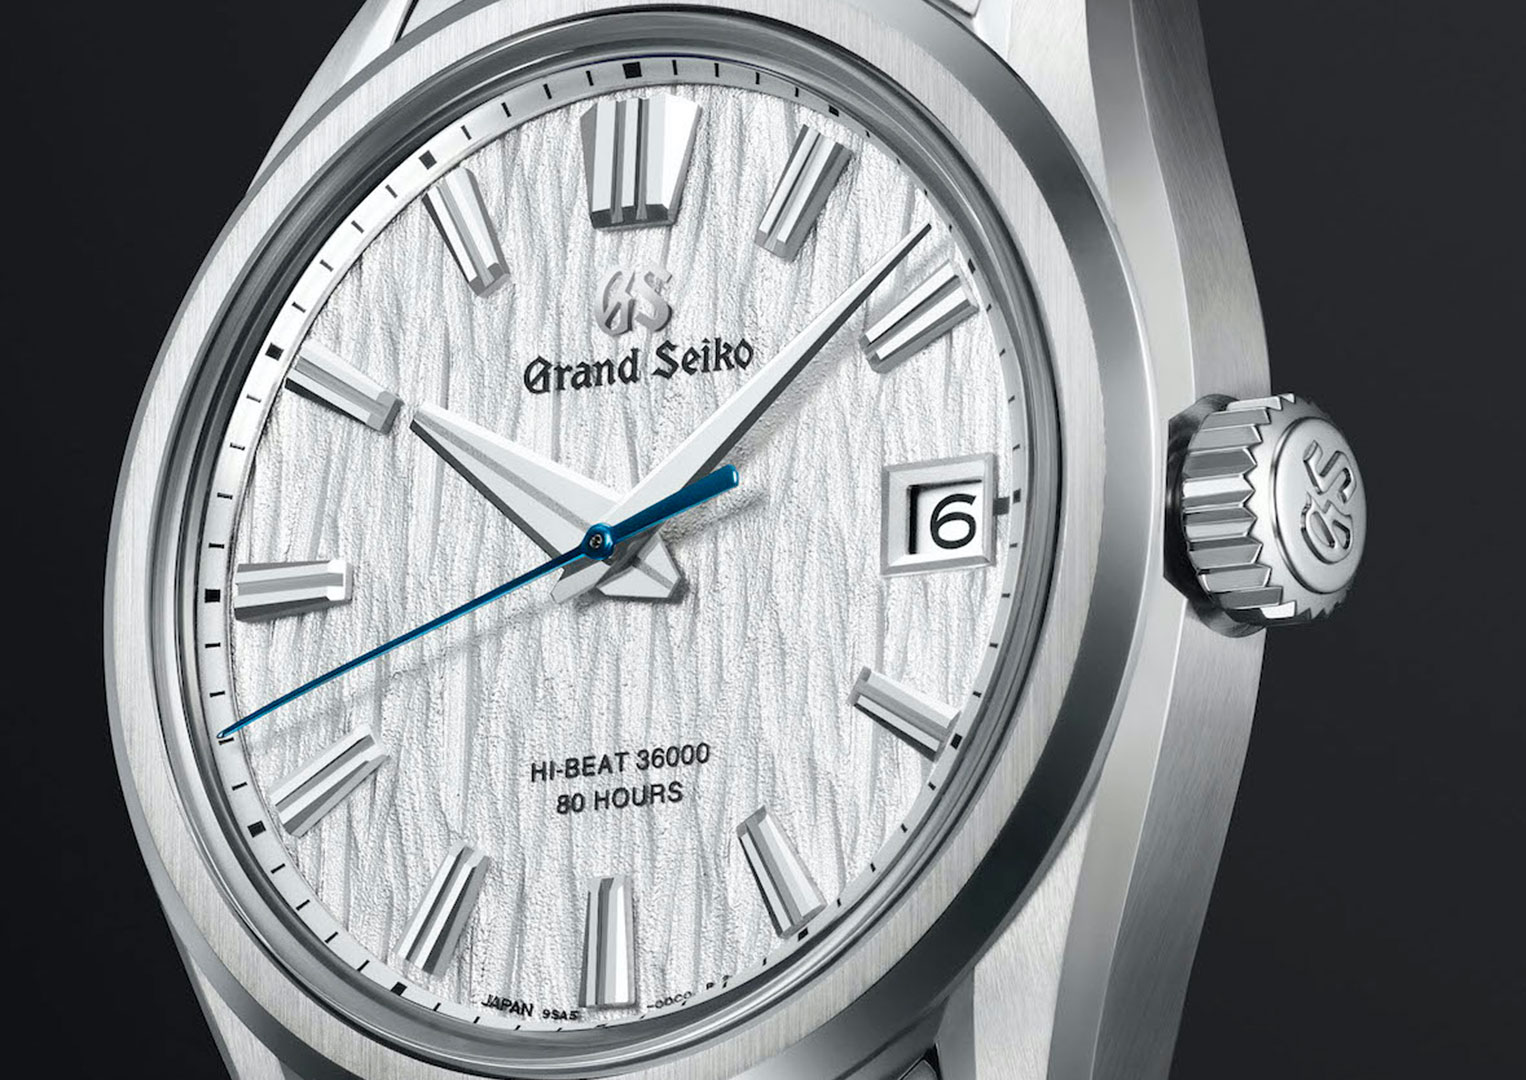 Grand Seiko watches are made in Iwate, Japan